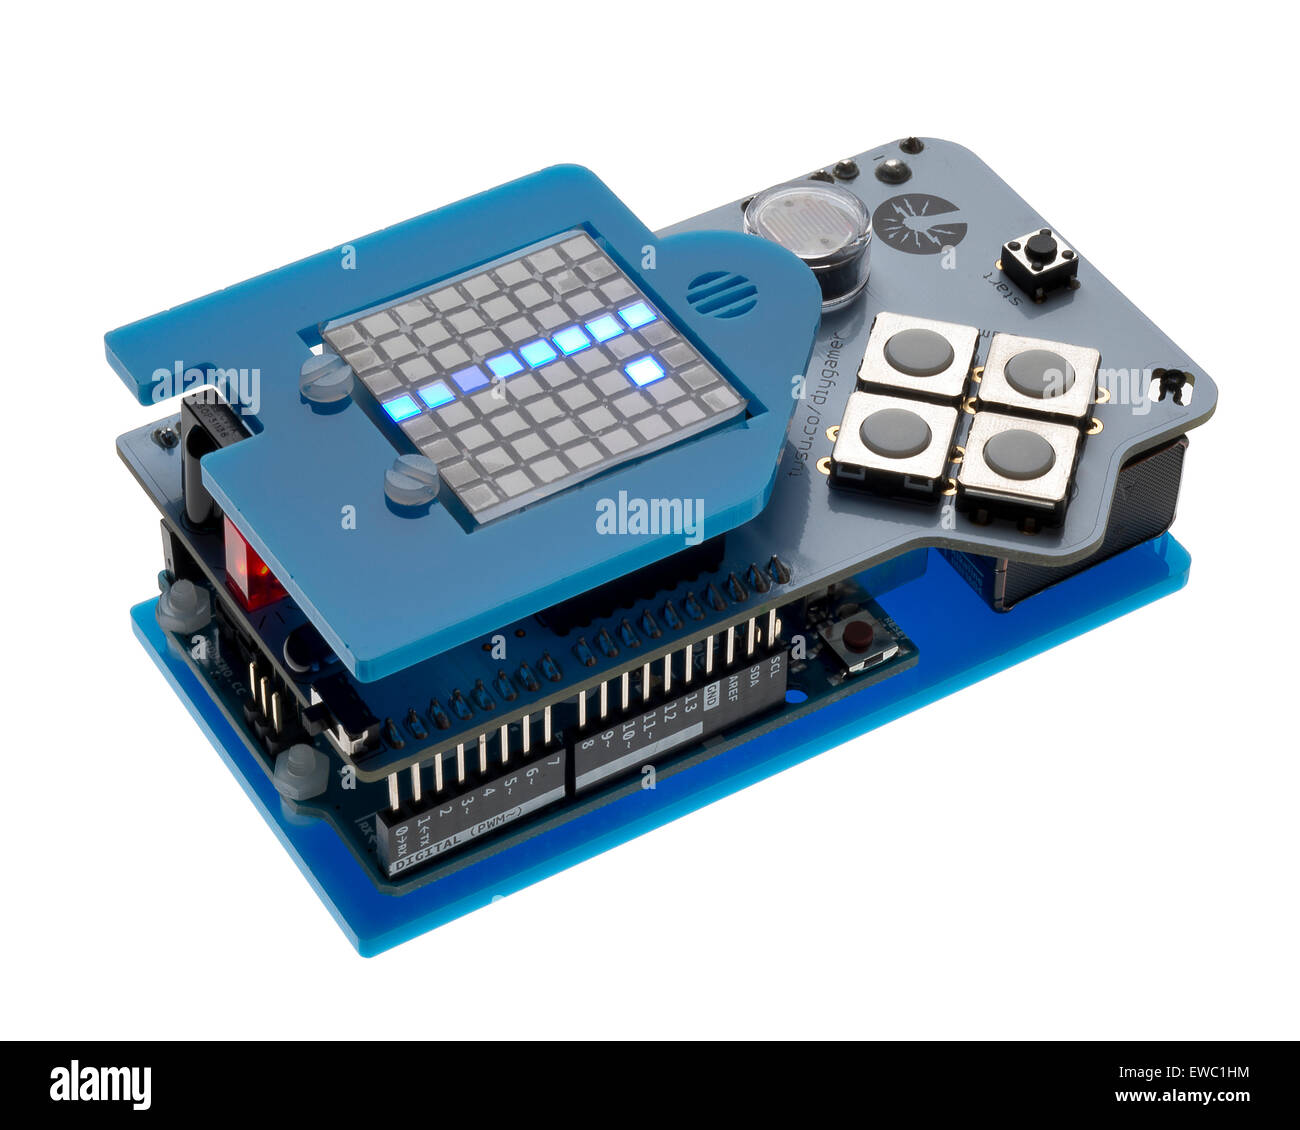 DIY gamer kit. Gadget for designing games and play. Learn to code your own games. - Stock Image